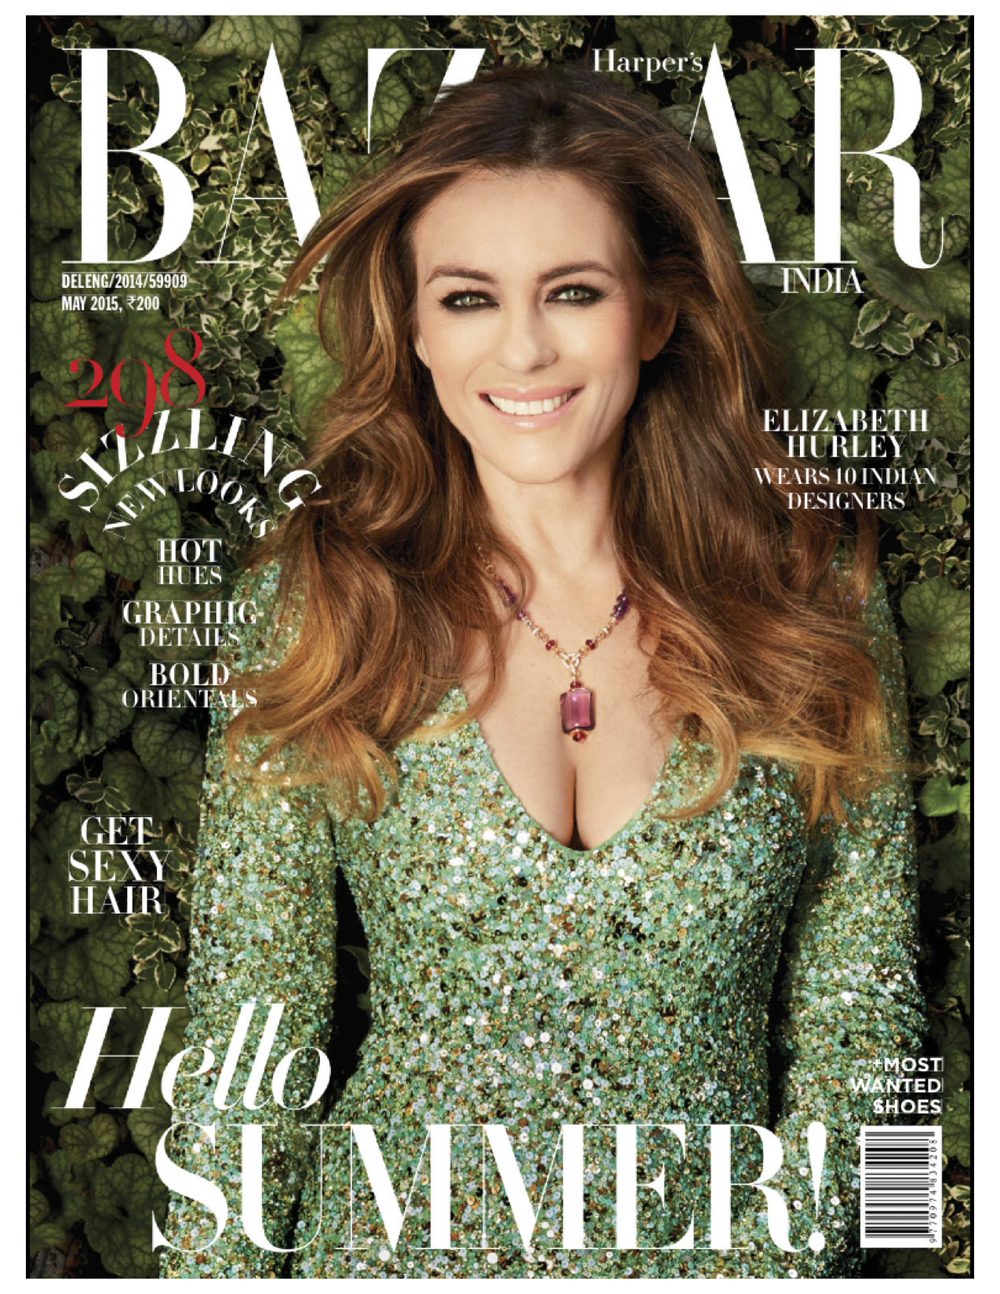 Elizabeth Hurley for Harper's Bazaar - May 2015